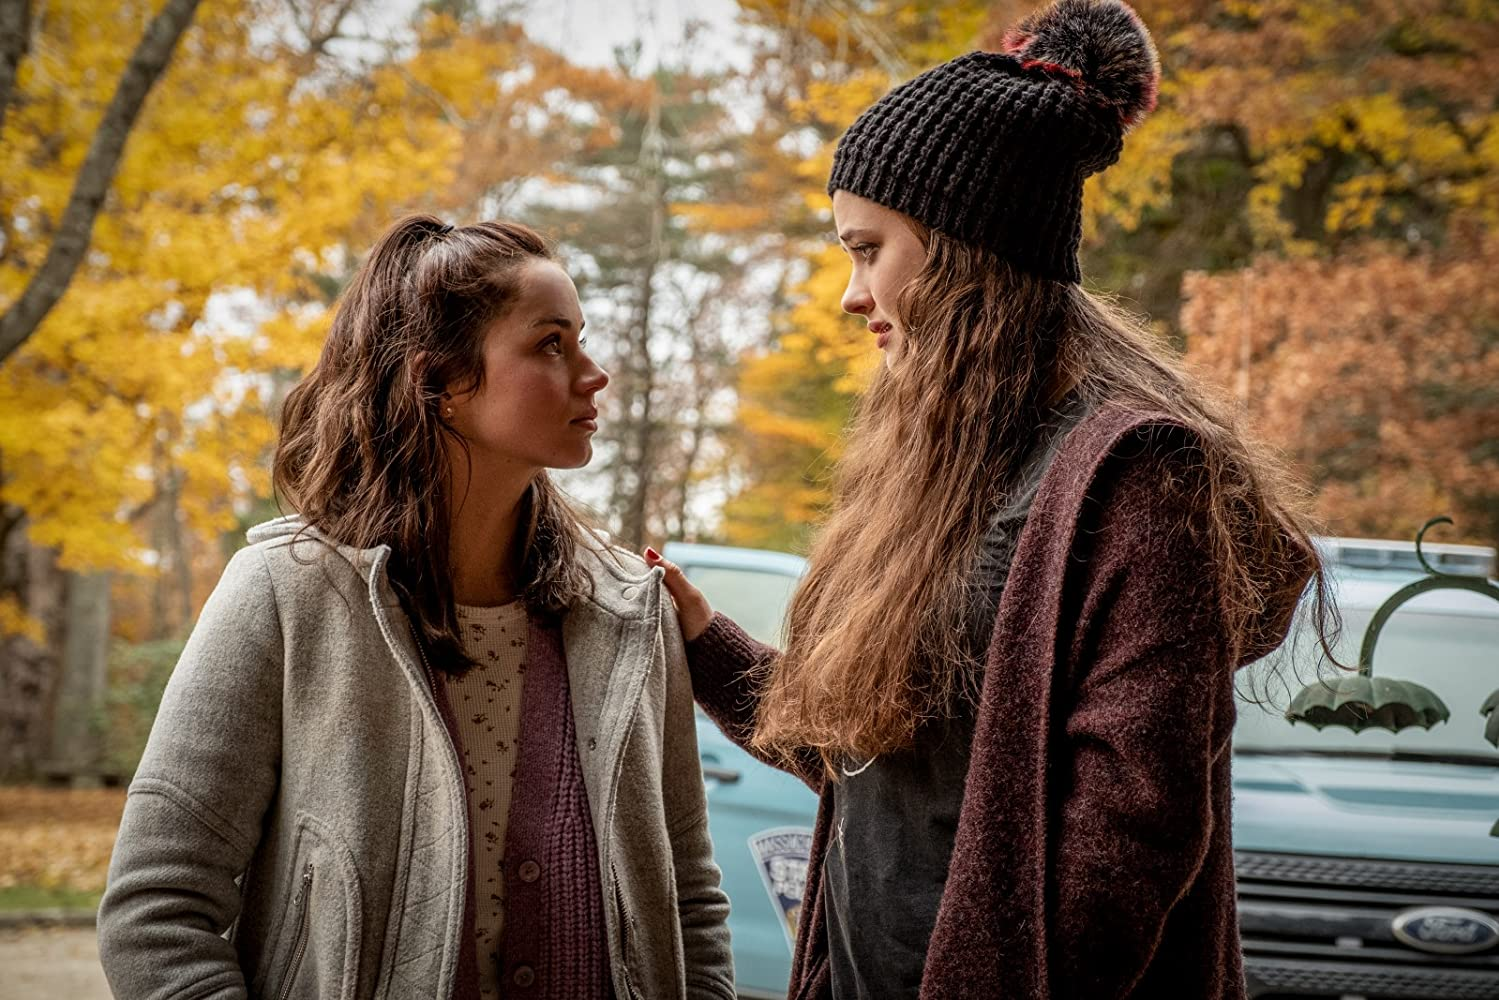 Ana de Armas and Katherine Langford in Knives Out (2019)